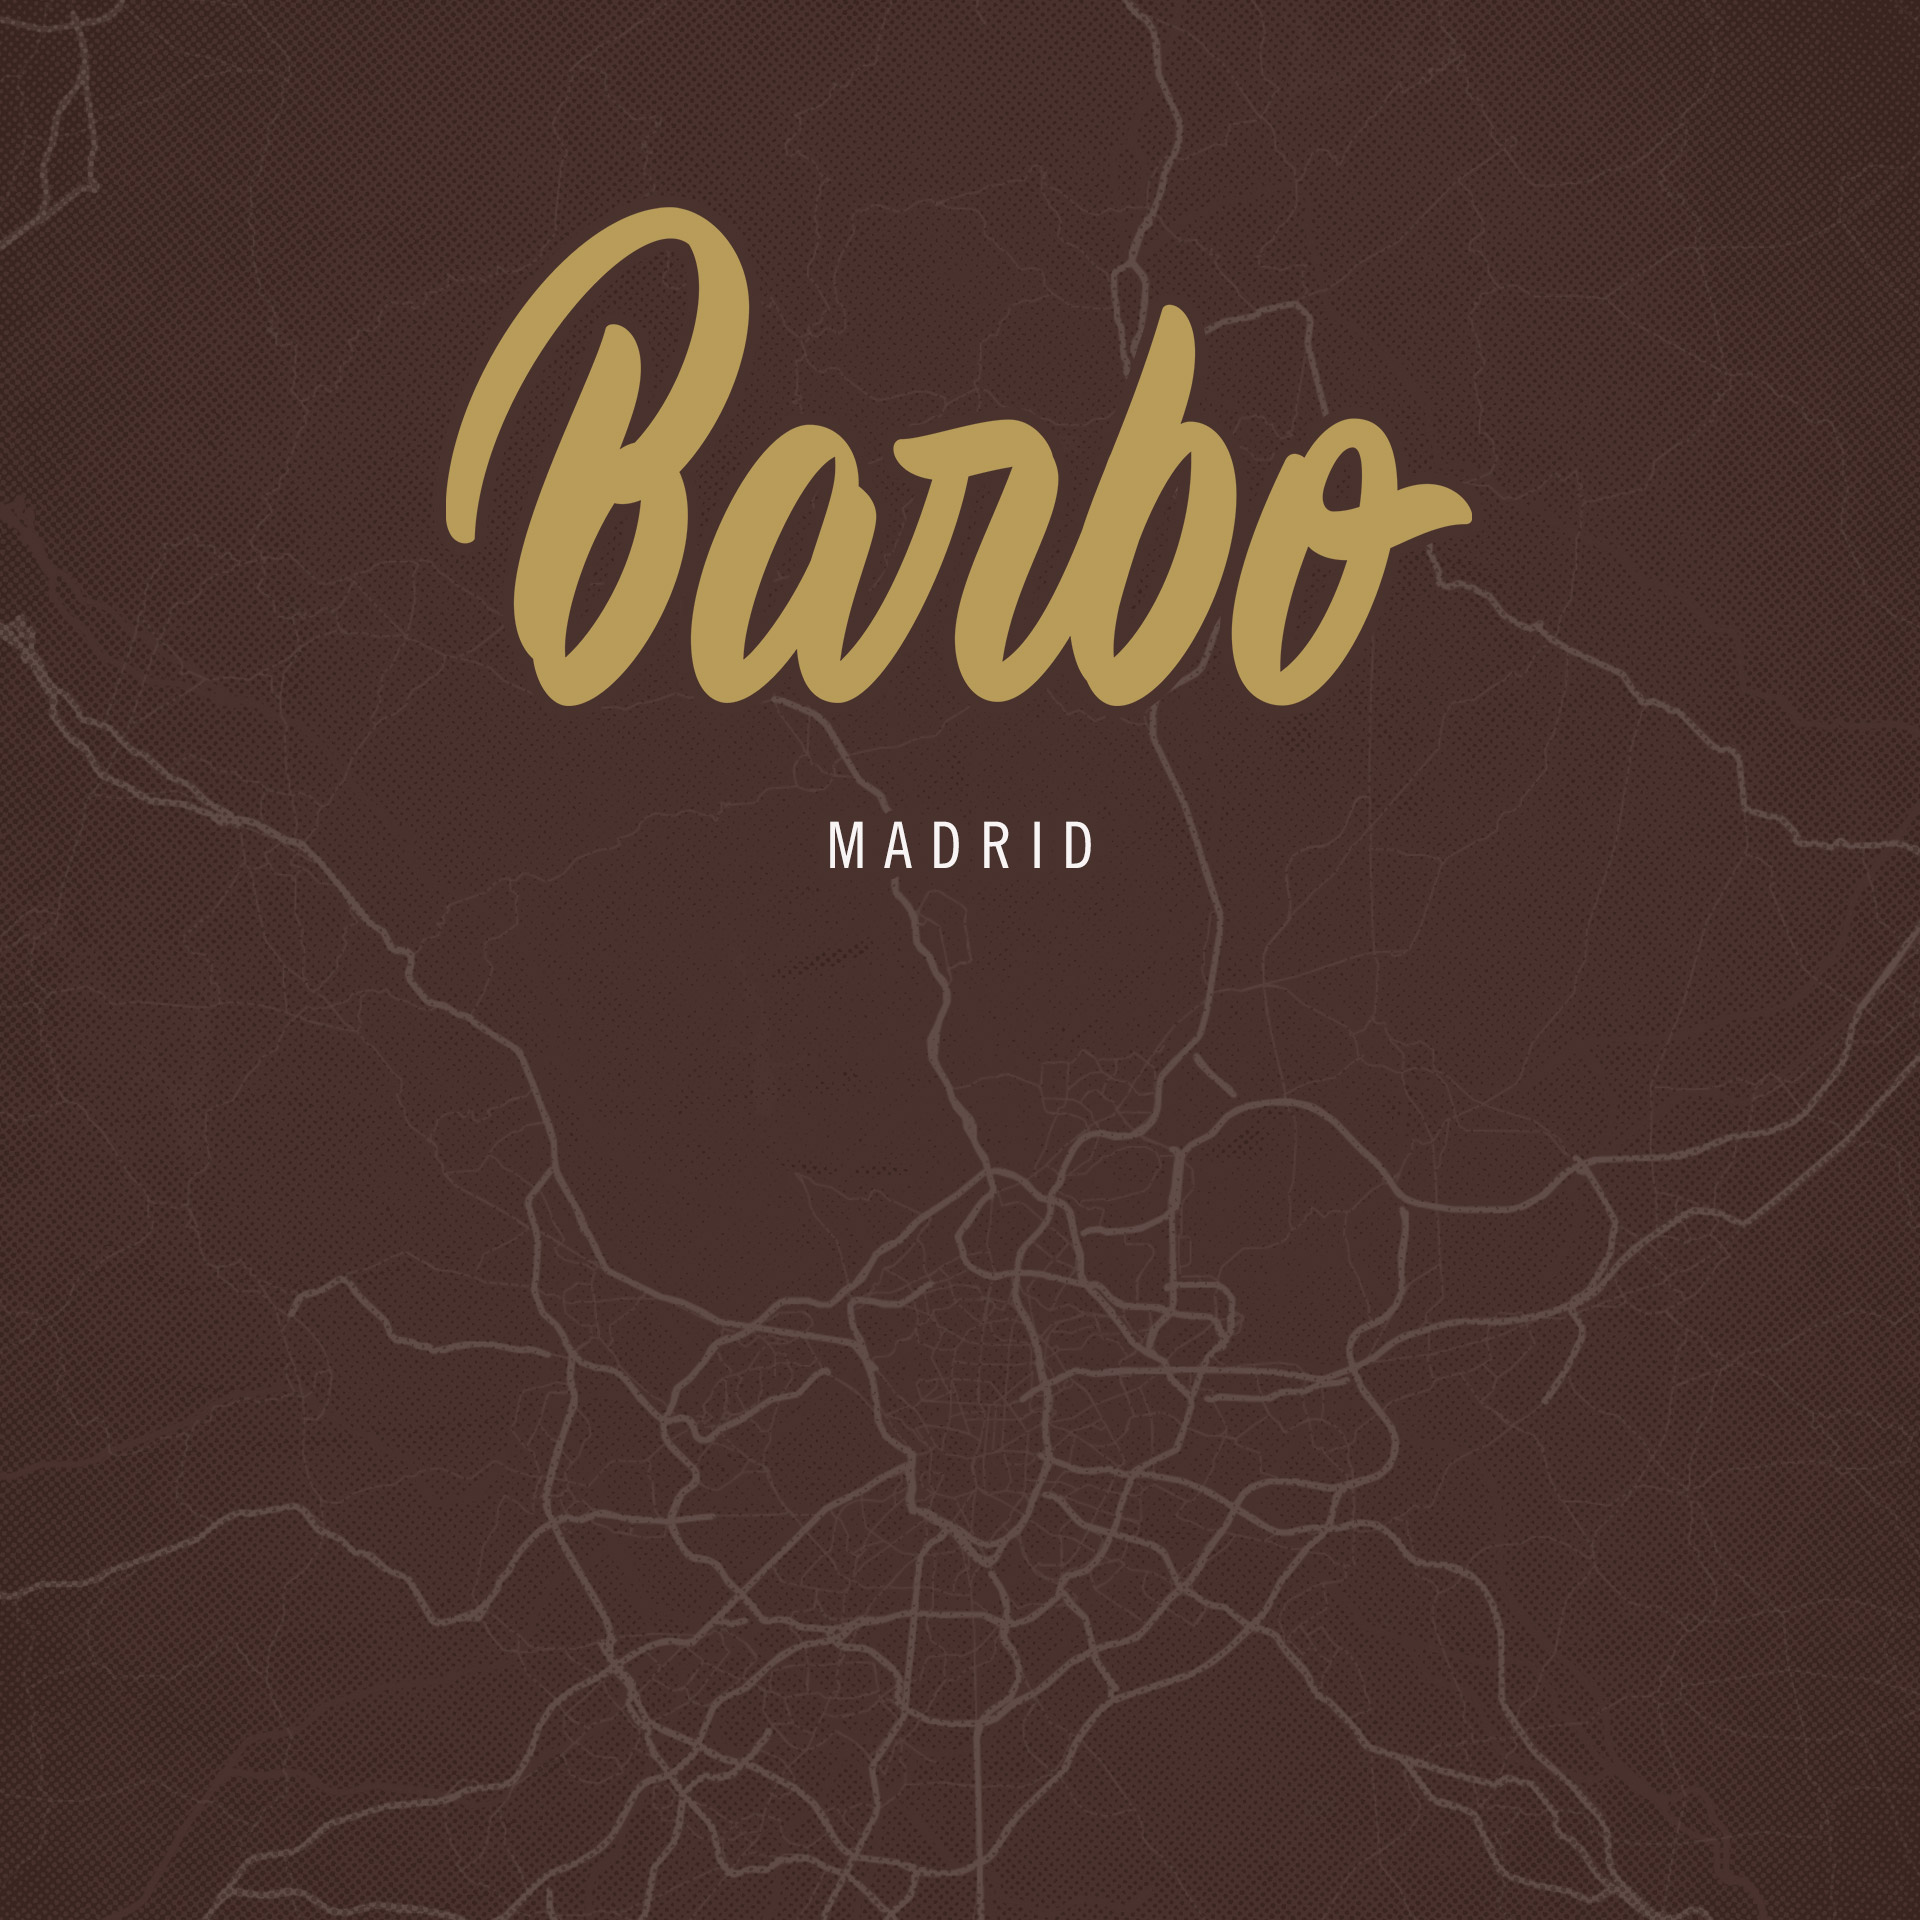 Barbo Madrid cover